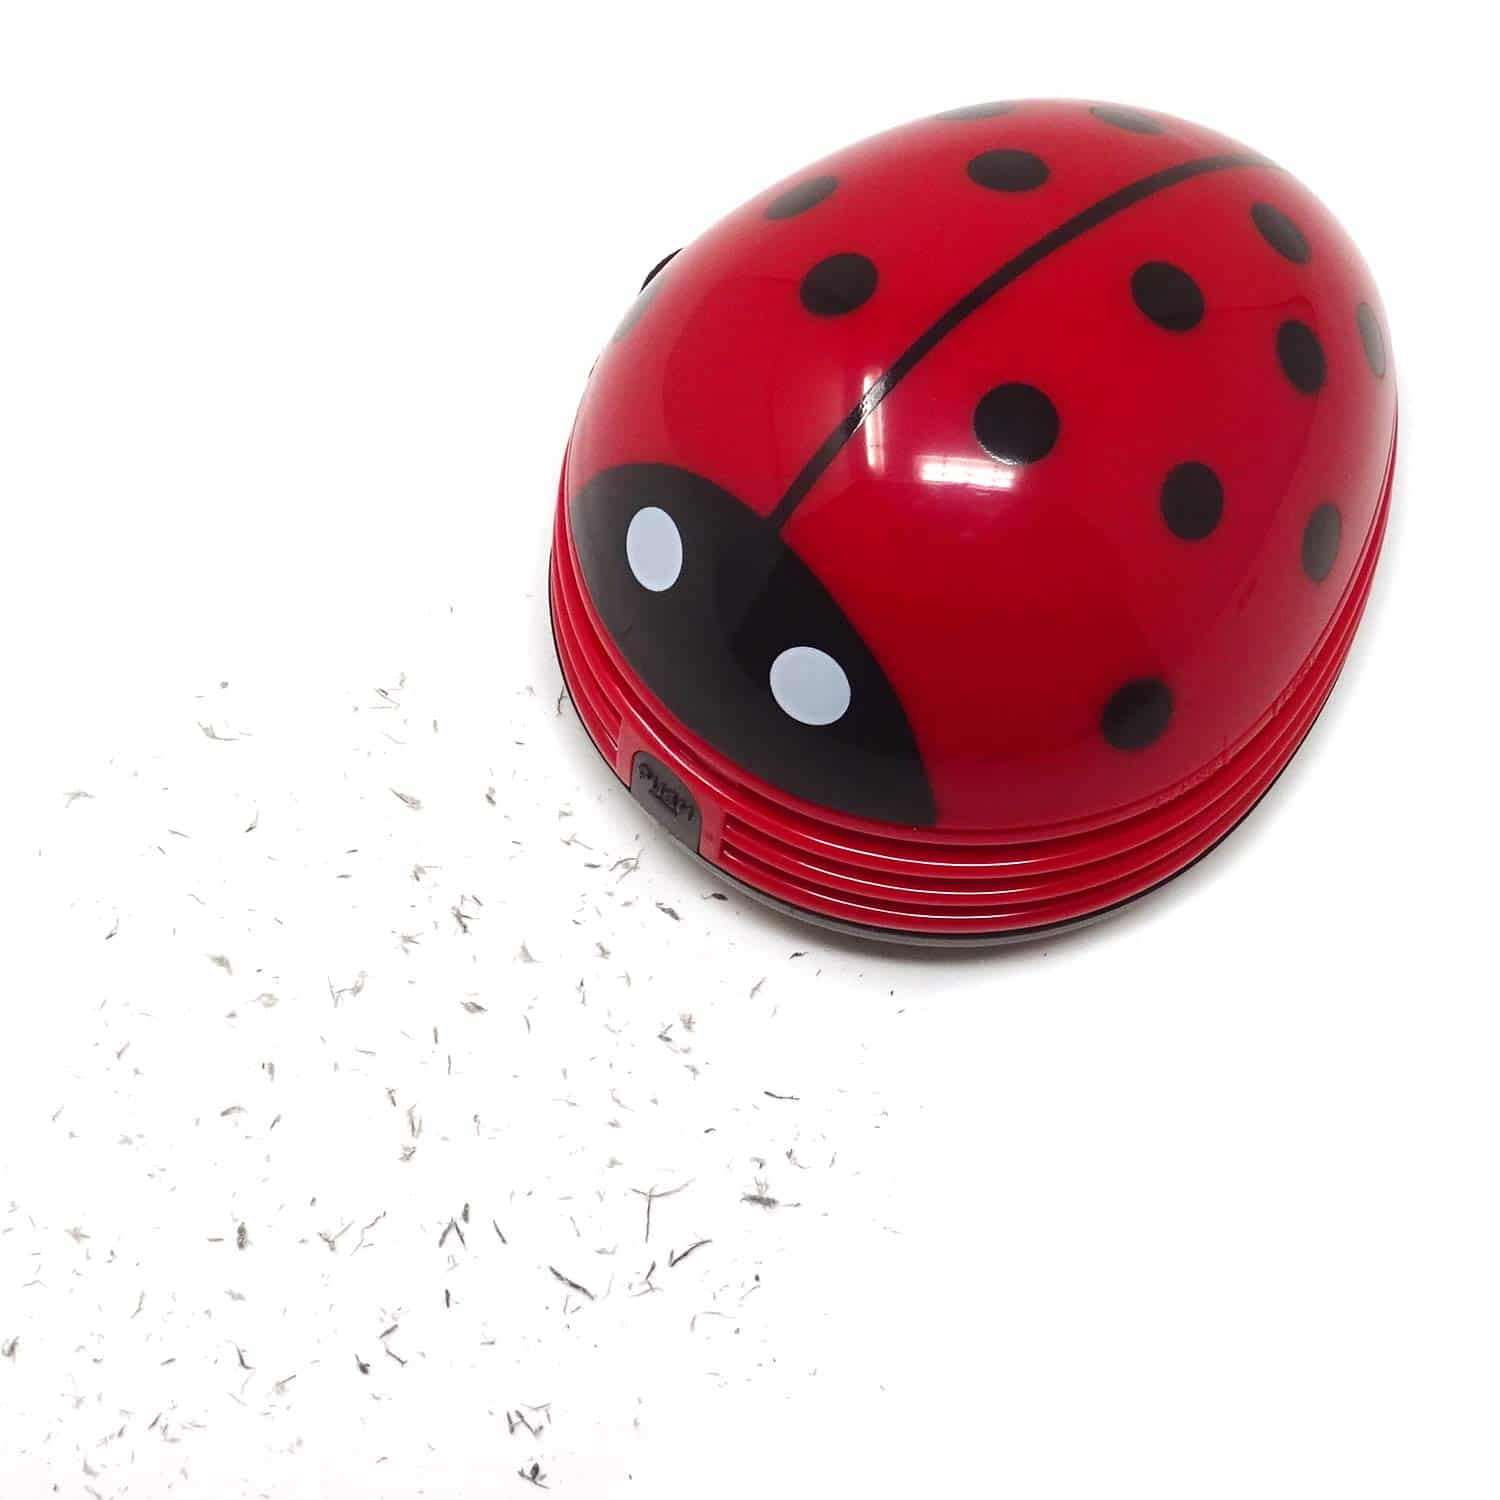 stocking-stuffers-for-women-ladybug